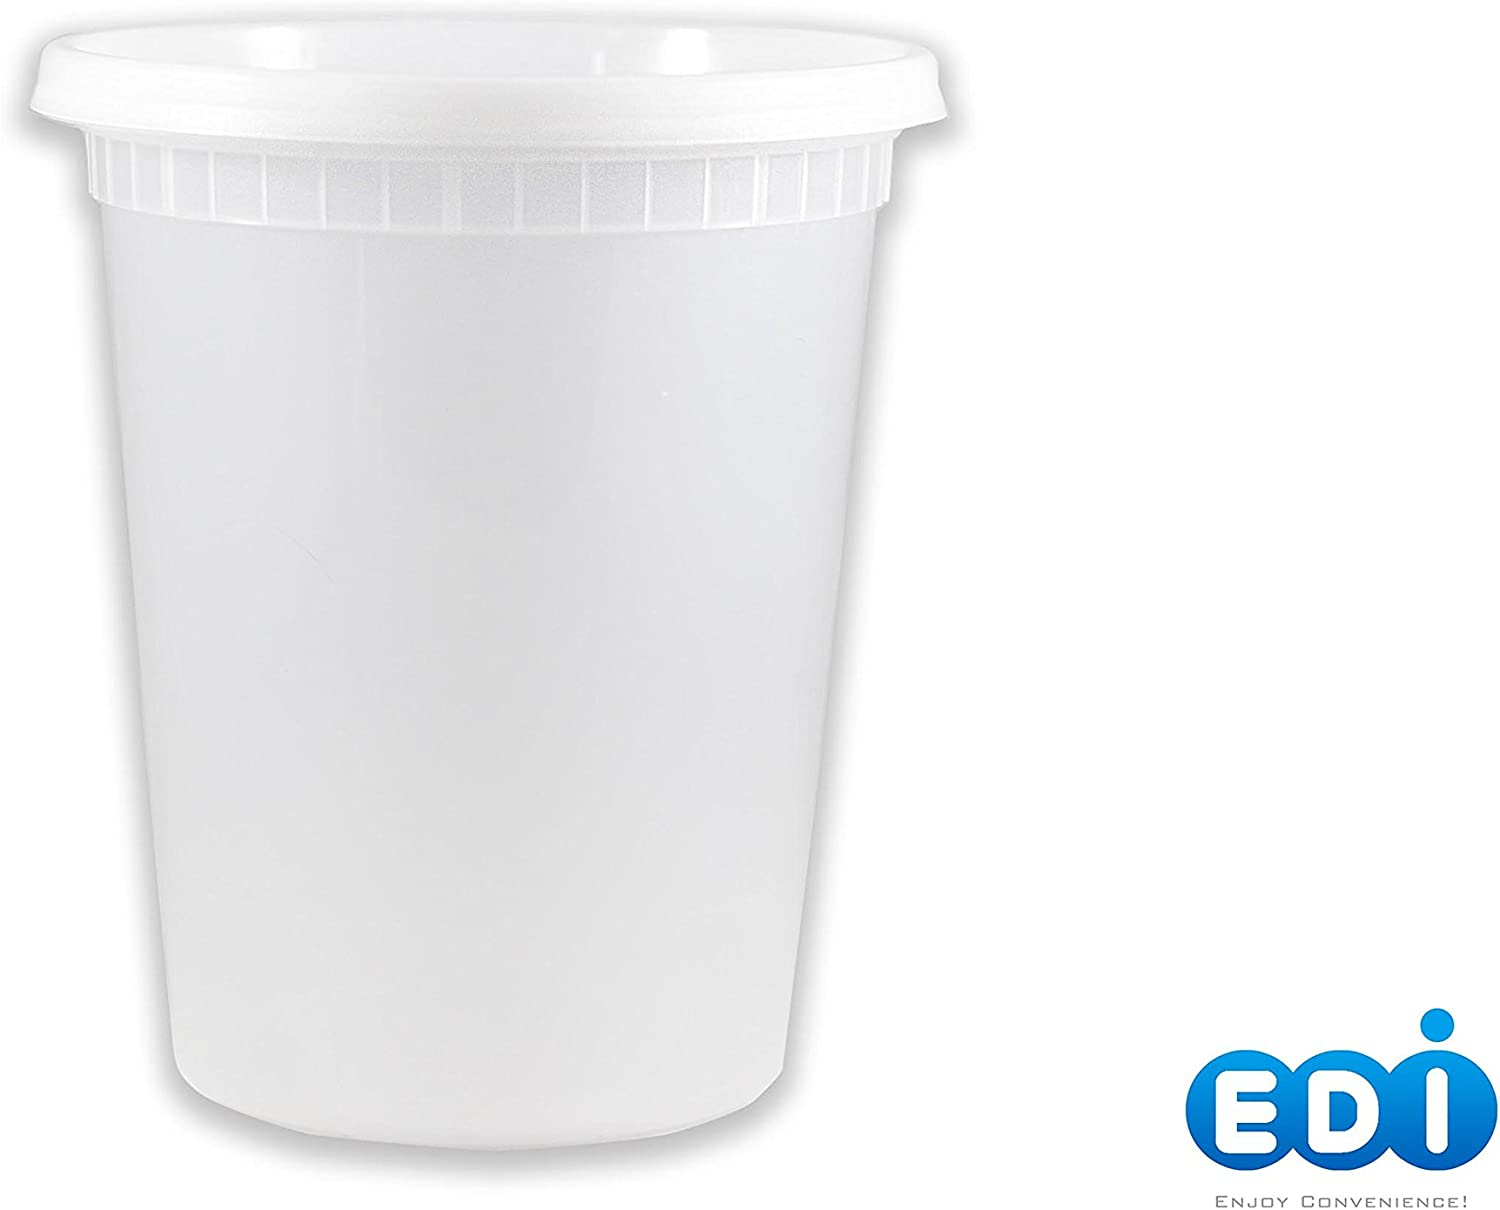 EDI 32 oz Deli Containers with Lids Clear Plastic Food Storage Container Premium Heavy-Duty Quality, Leak proof&Freezer&Dishwasher Safe (40, 32 OZ)